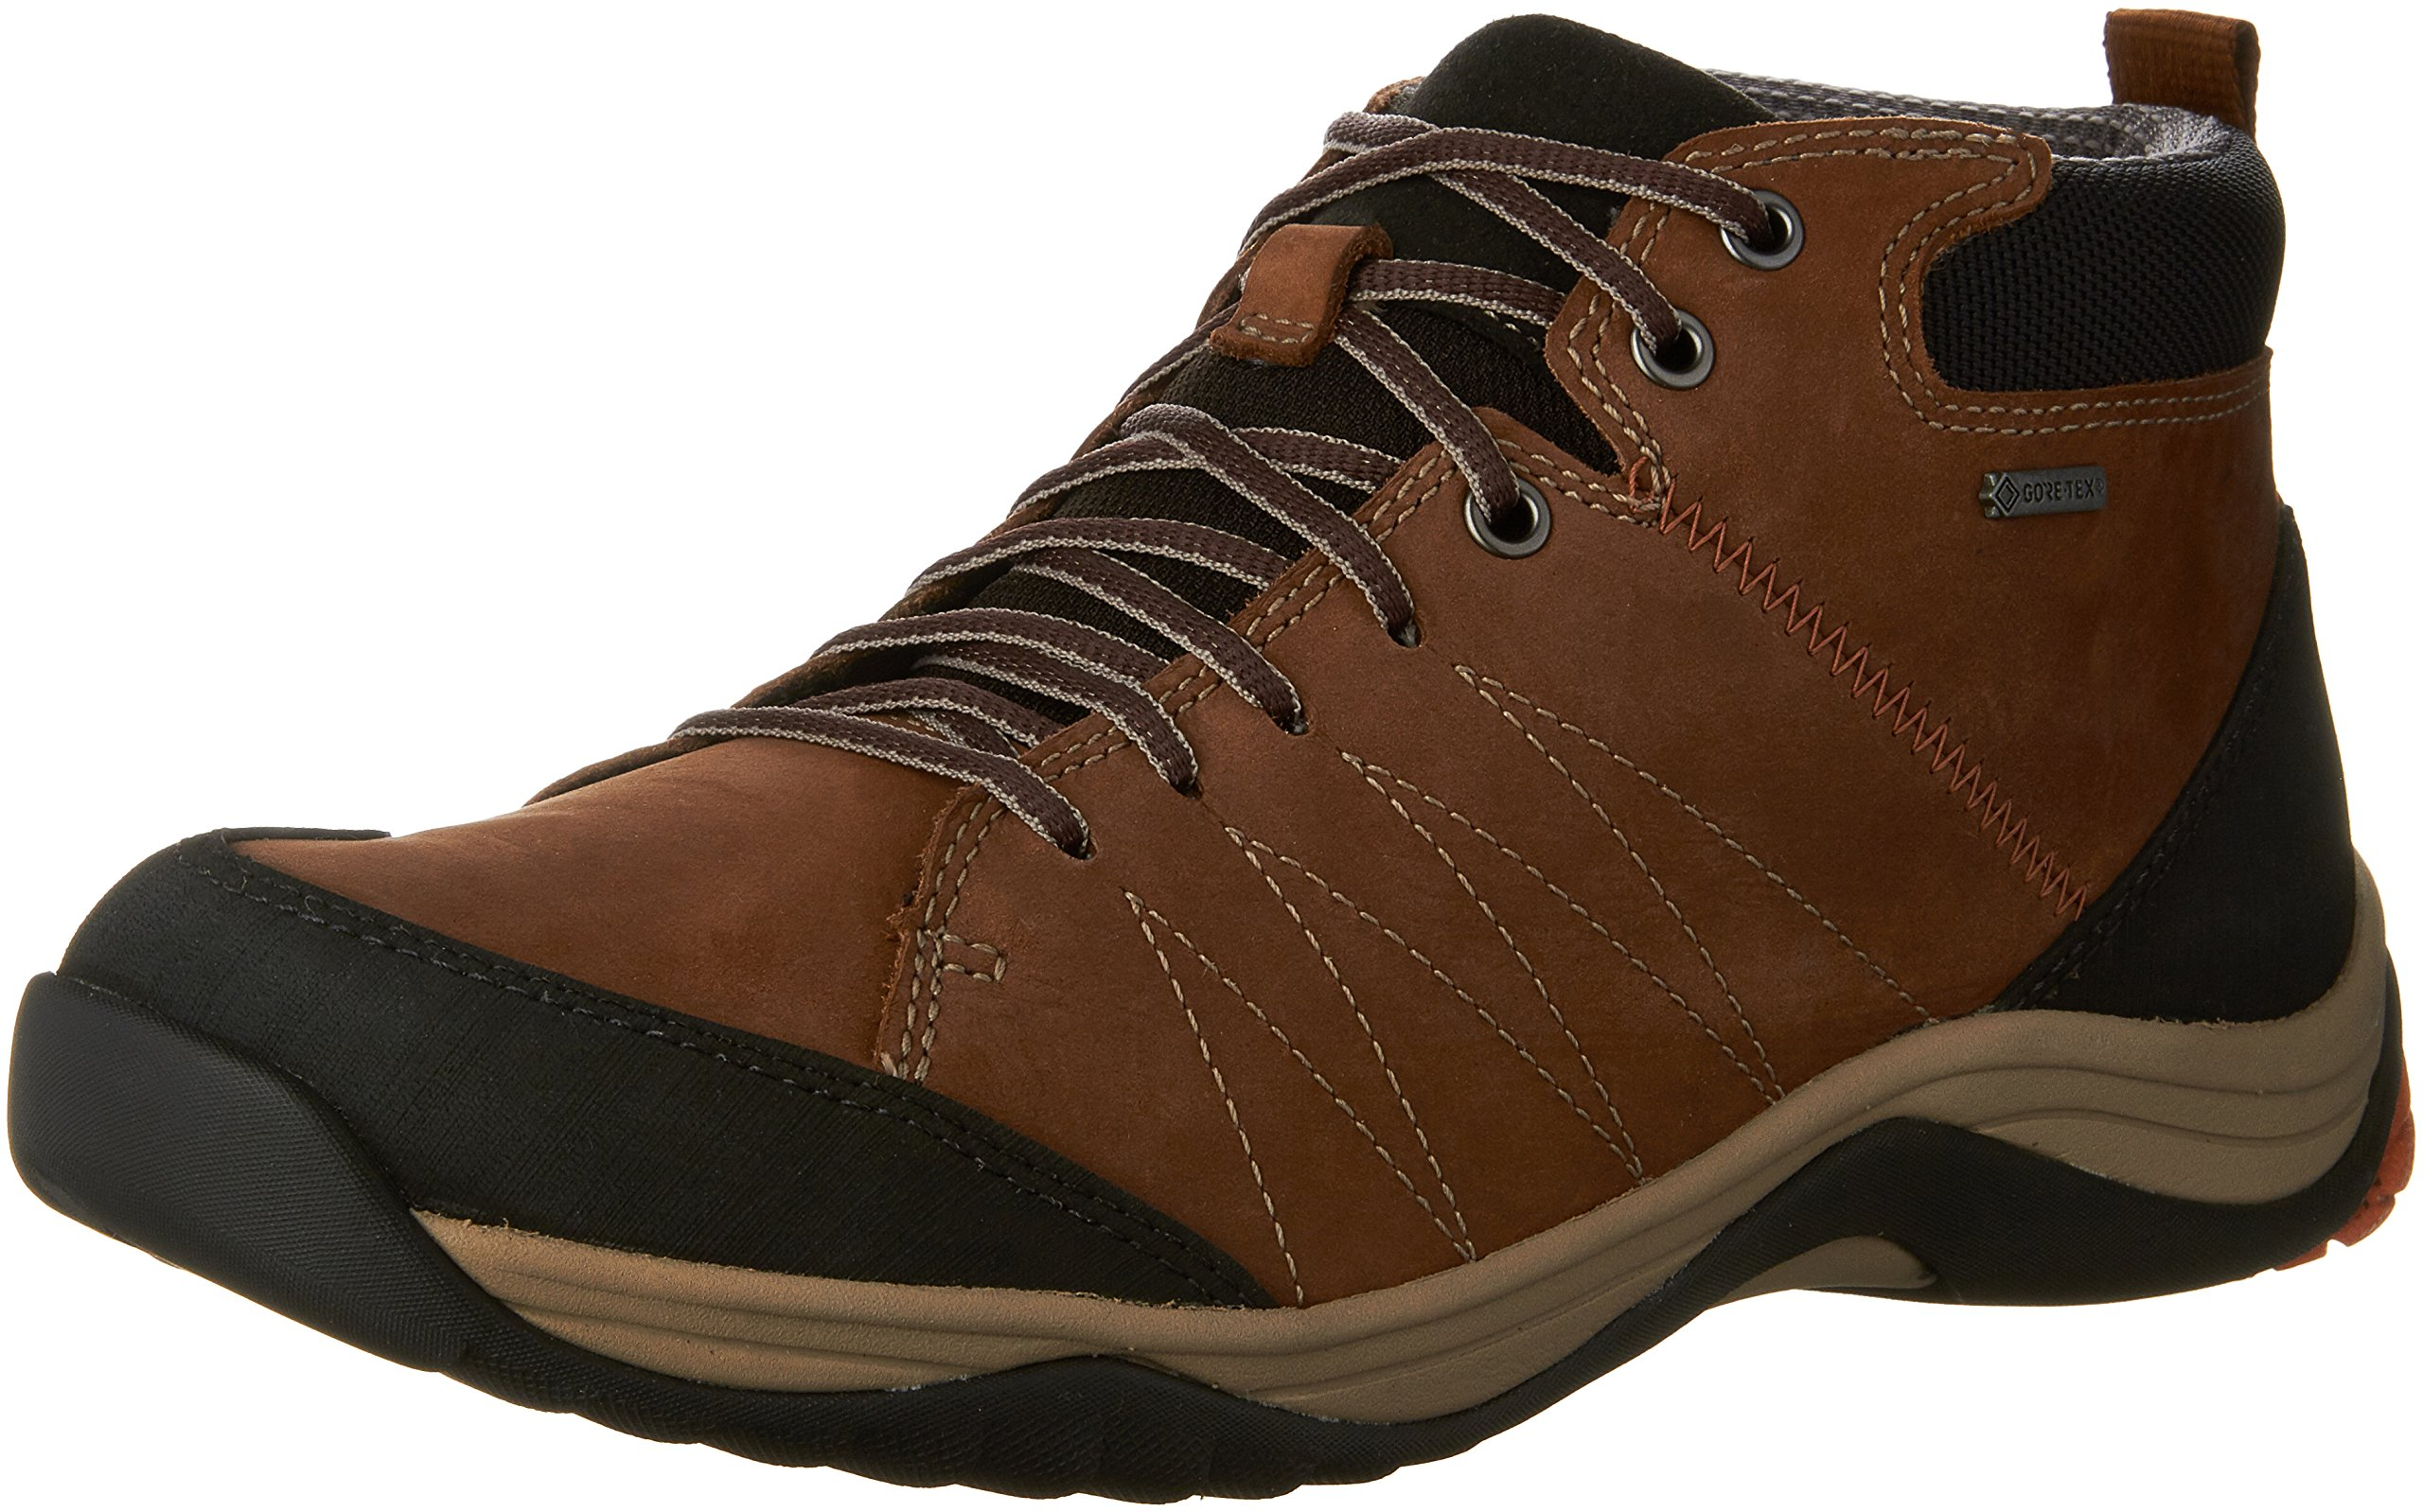 CLARKS Men's Baystone up Gore-TEX Ankle Boot,Tobacco Nubuck,US 9.5 M by CLARKS